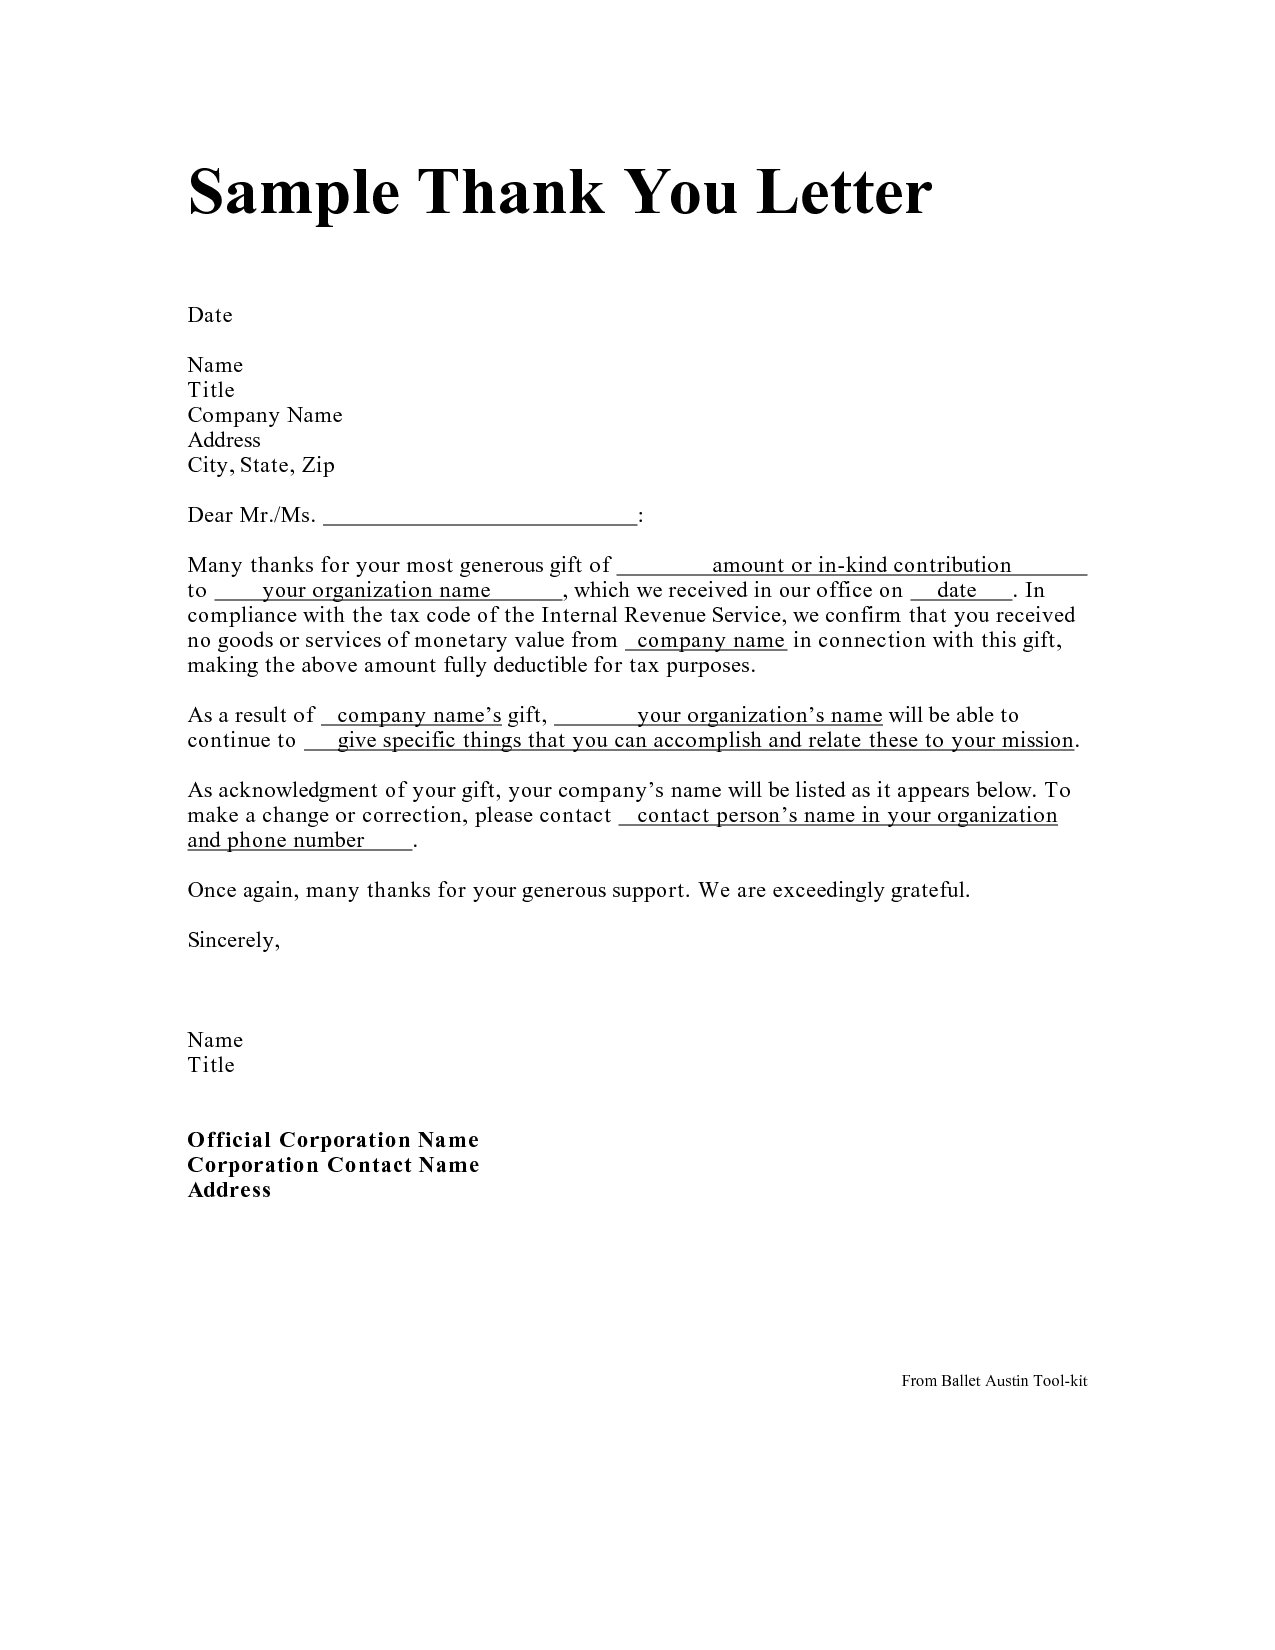 iou letter template example-Personal Thank You Letter Personal Thank You Letter Samples Writing Thank You Notes Thank You Note Examples 12-r